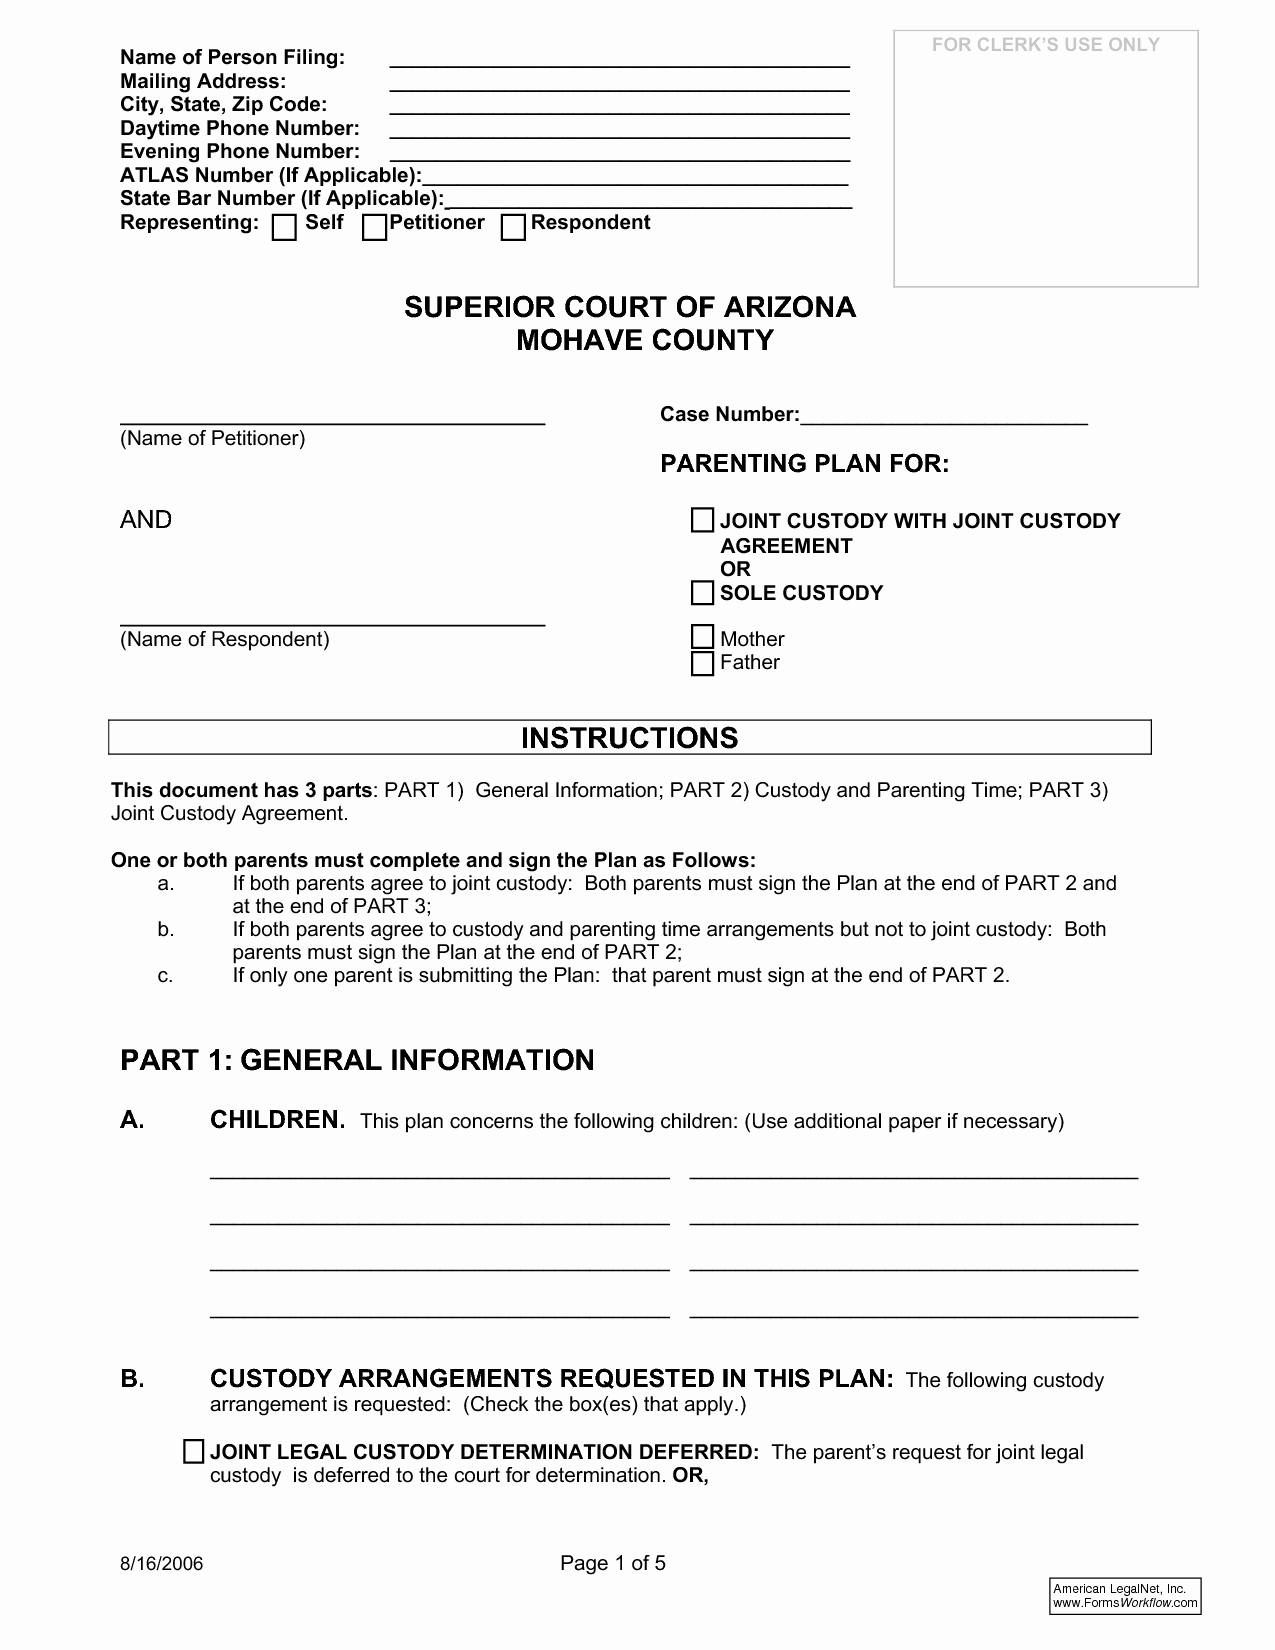 Sole Custody Agreement Template Fresh Best S Of Joint Agreement forms Sample Joint